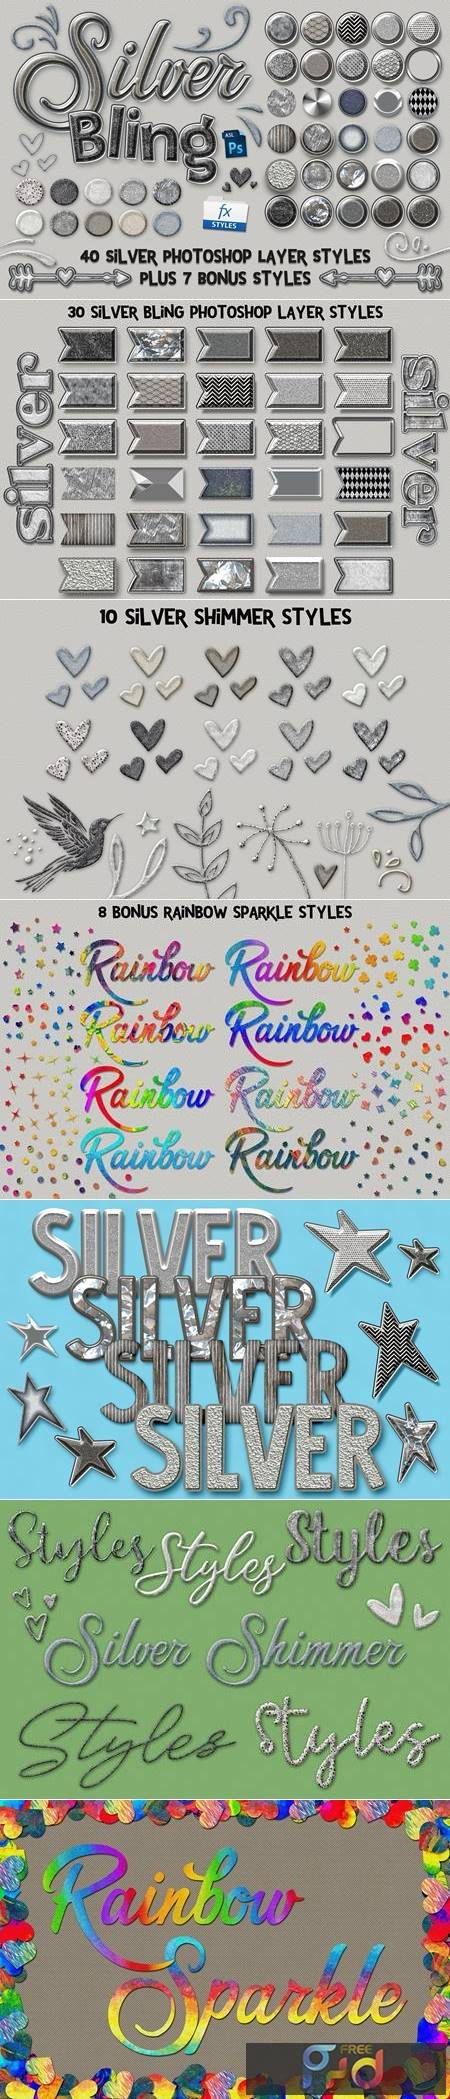 Silver Bling Photoshop Layer Styles 5115002 1